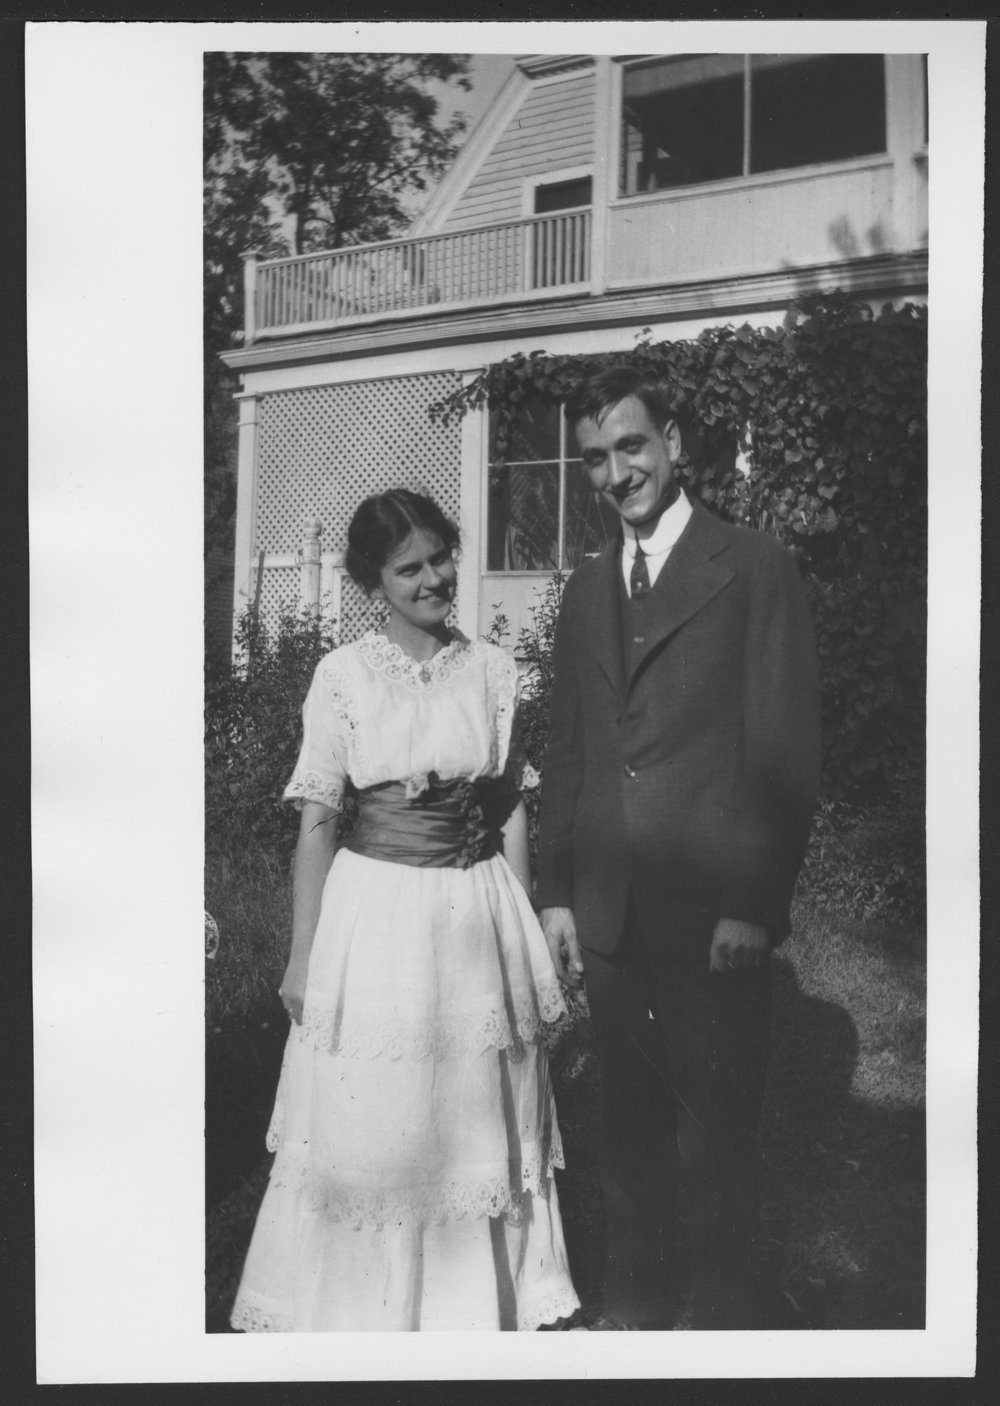 Karl A. Menninger, M.D. - Karl Menninger and Grace Gaines, his first wife, in 1919.